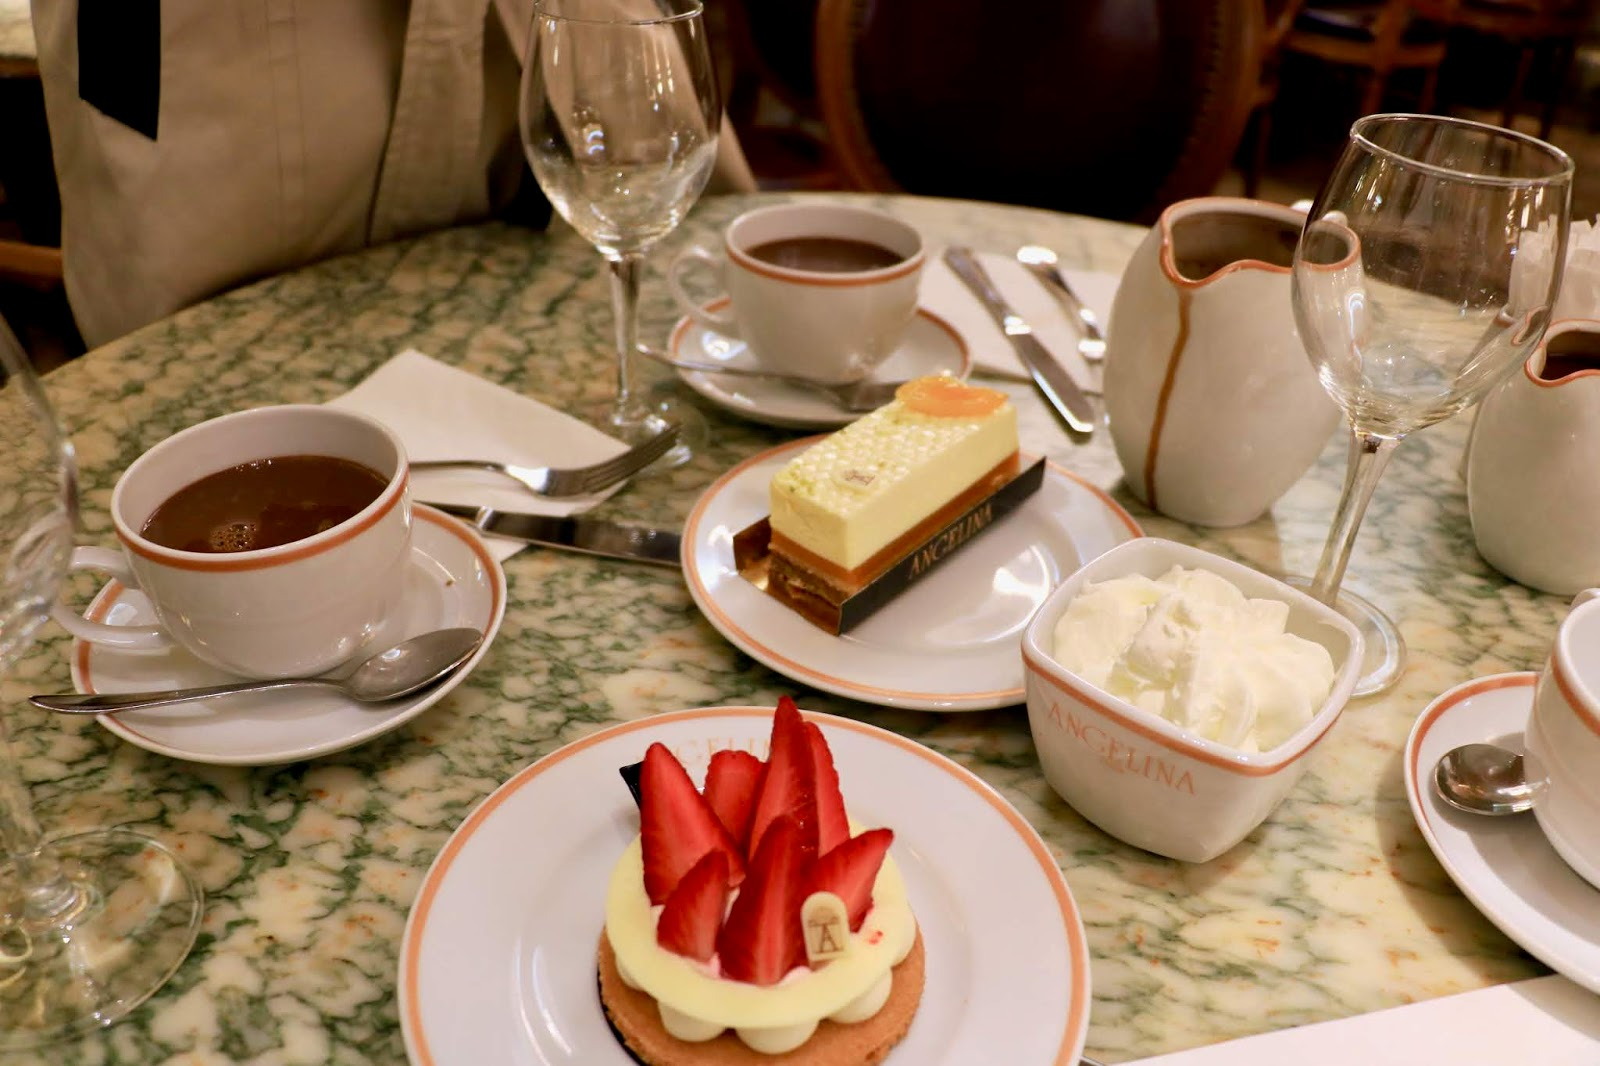 Pastries from Angelinas Tea House in Paris